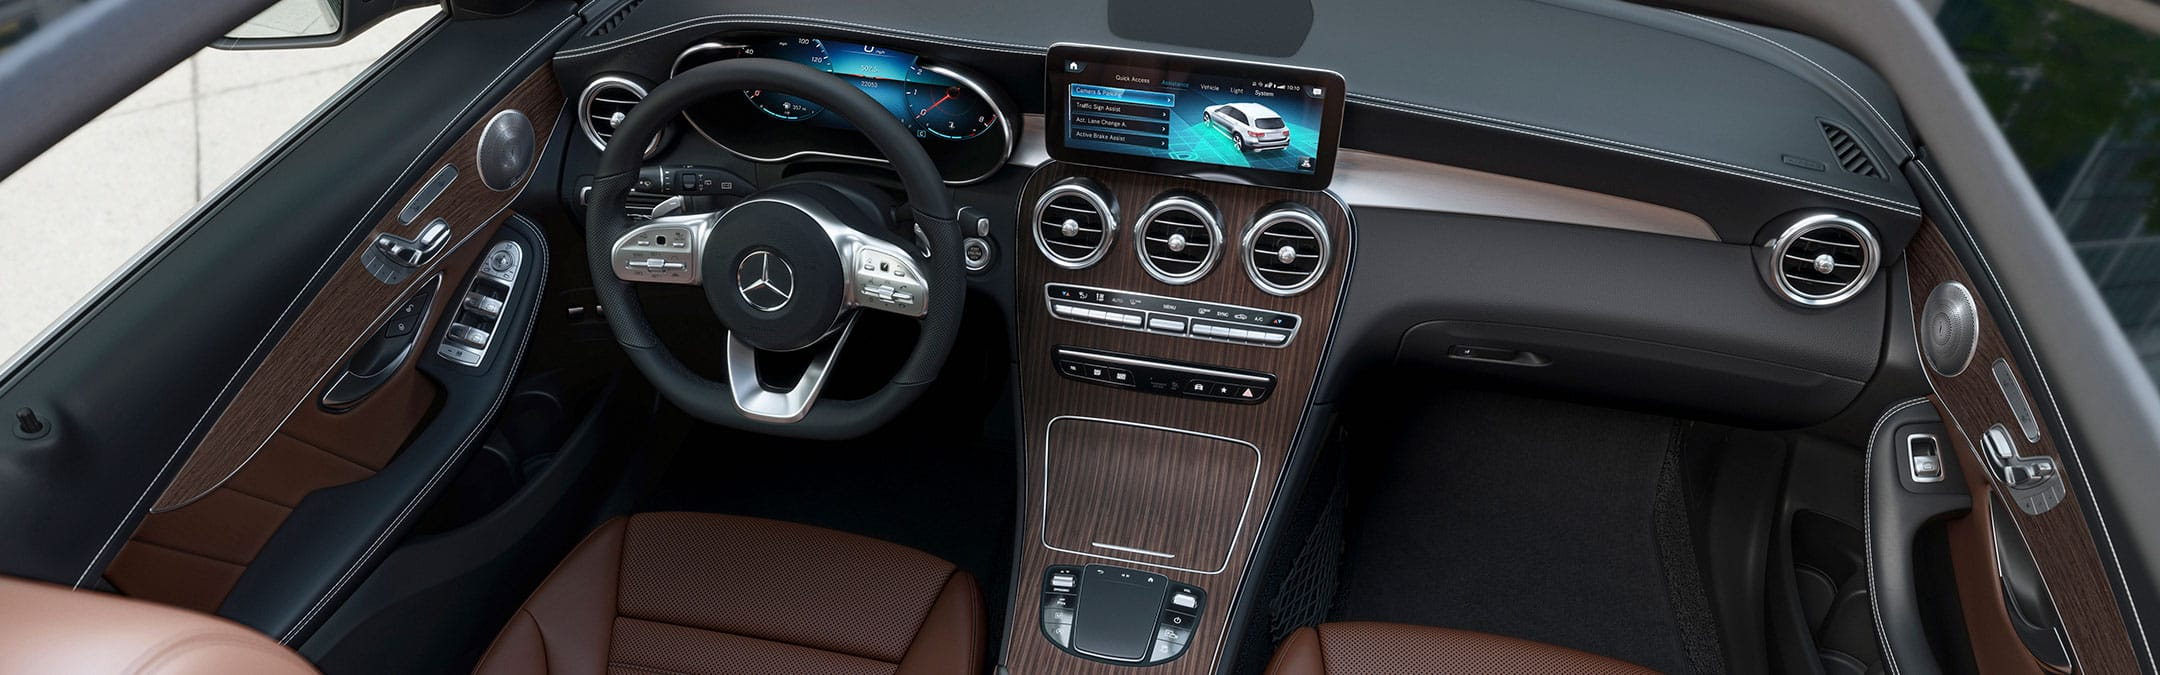 2020 GLC SUV Innovation